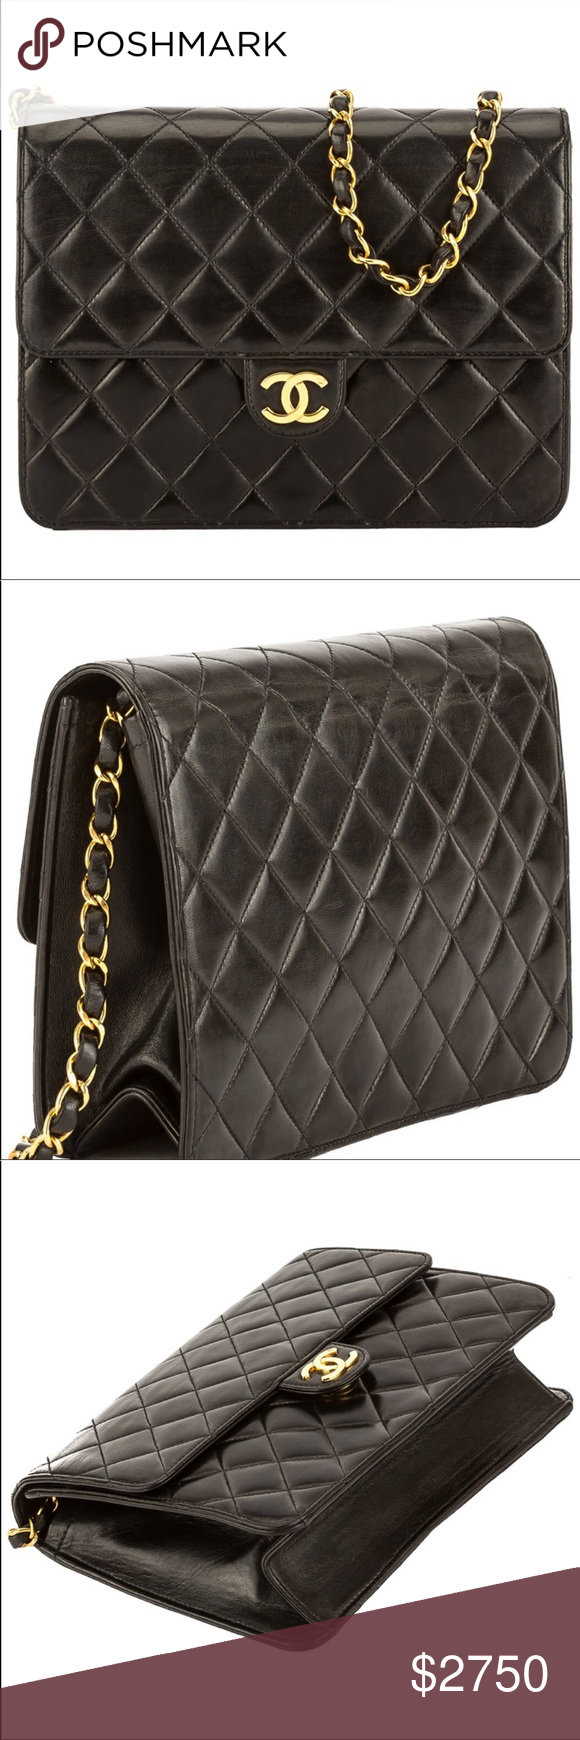 72b823b4e902 Vintage WGACA Ex-Chanel Quilted Flap Bag WGACA features this bag because  it's the best flap bag due to can be worn Three way, Signature quilted  leather ...